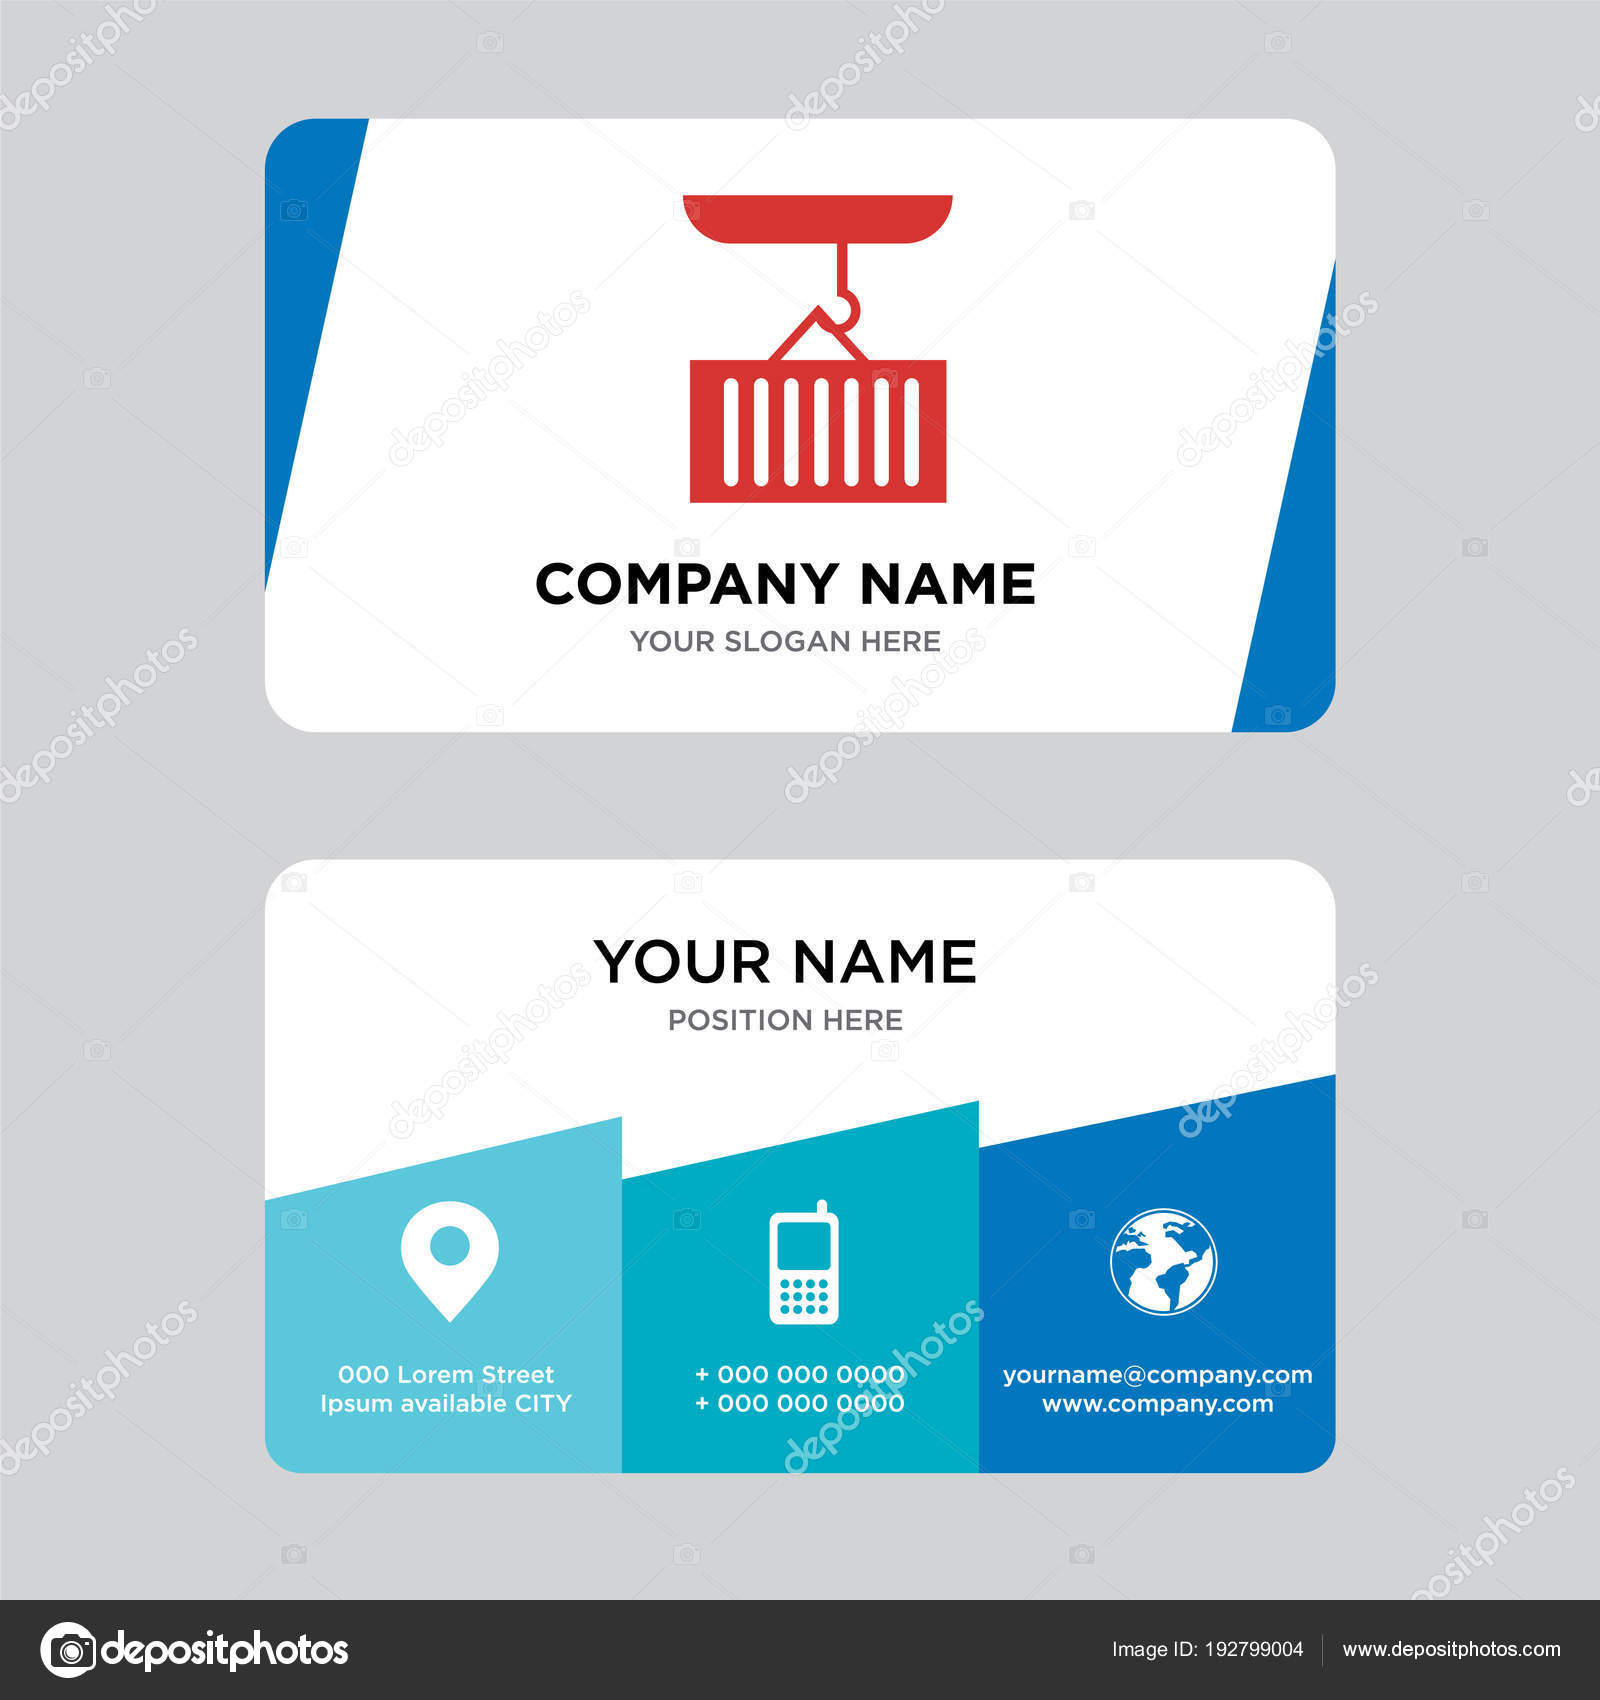 Container Hanging Of A Crane Business Card Design Template Stock